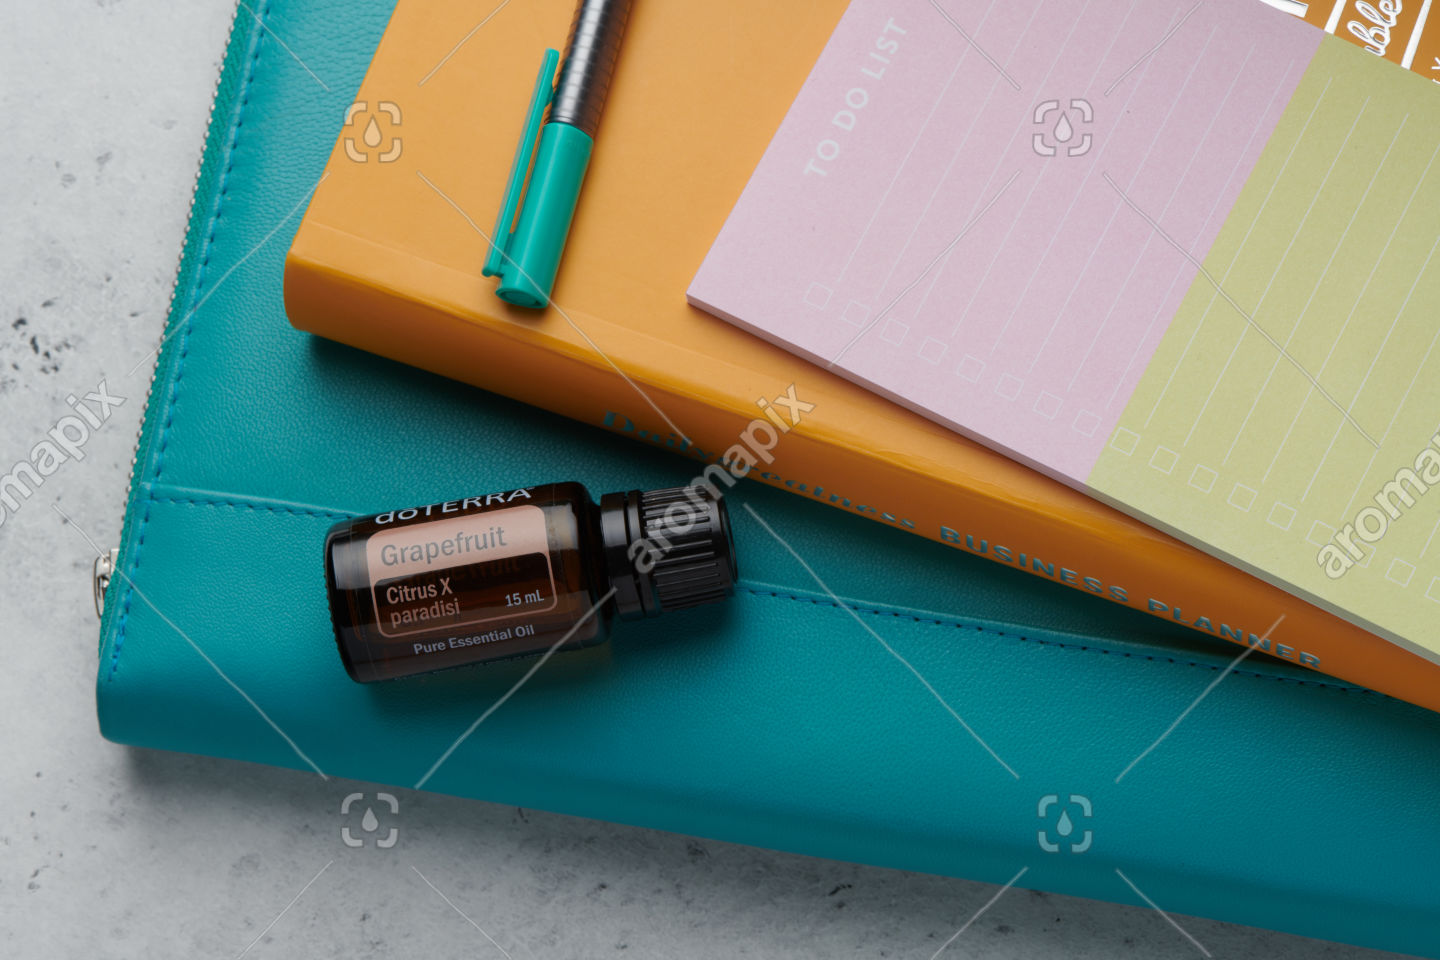 doTERRA Grapefruit product with business tools